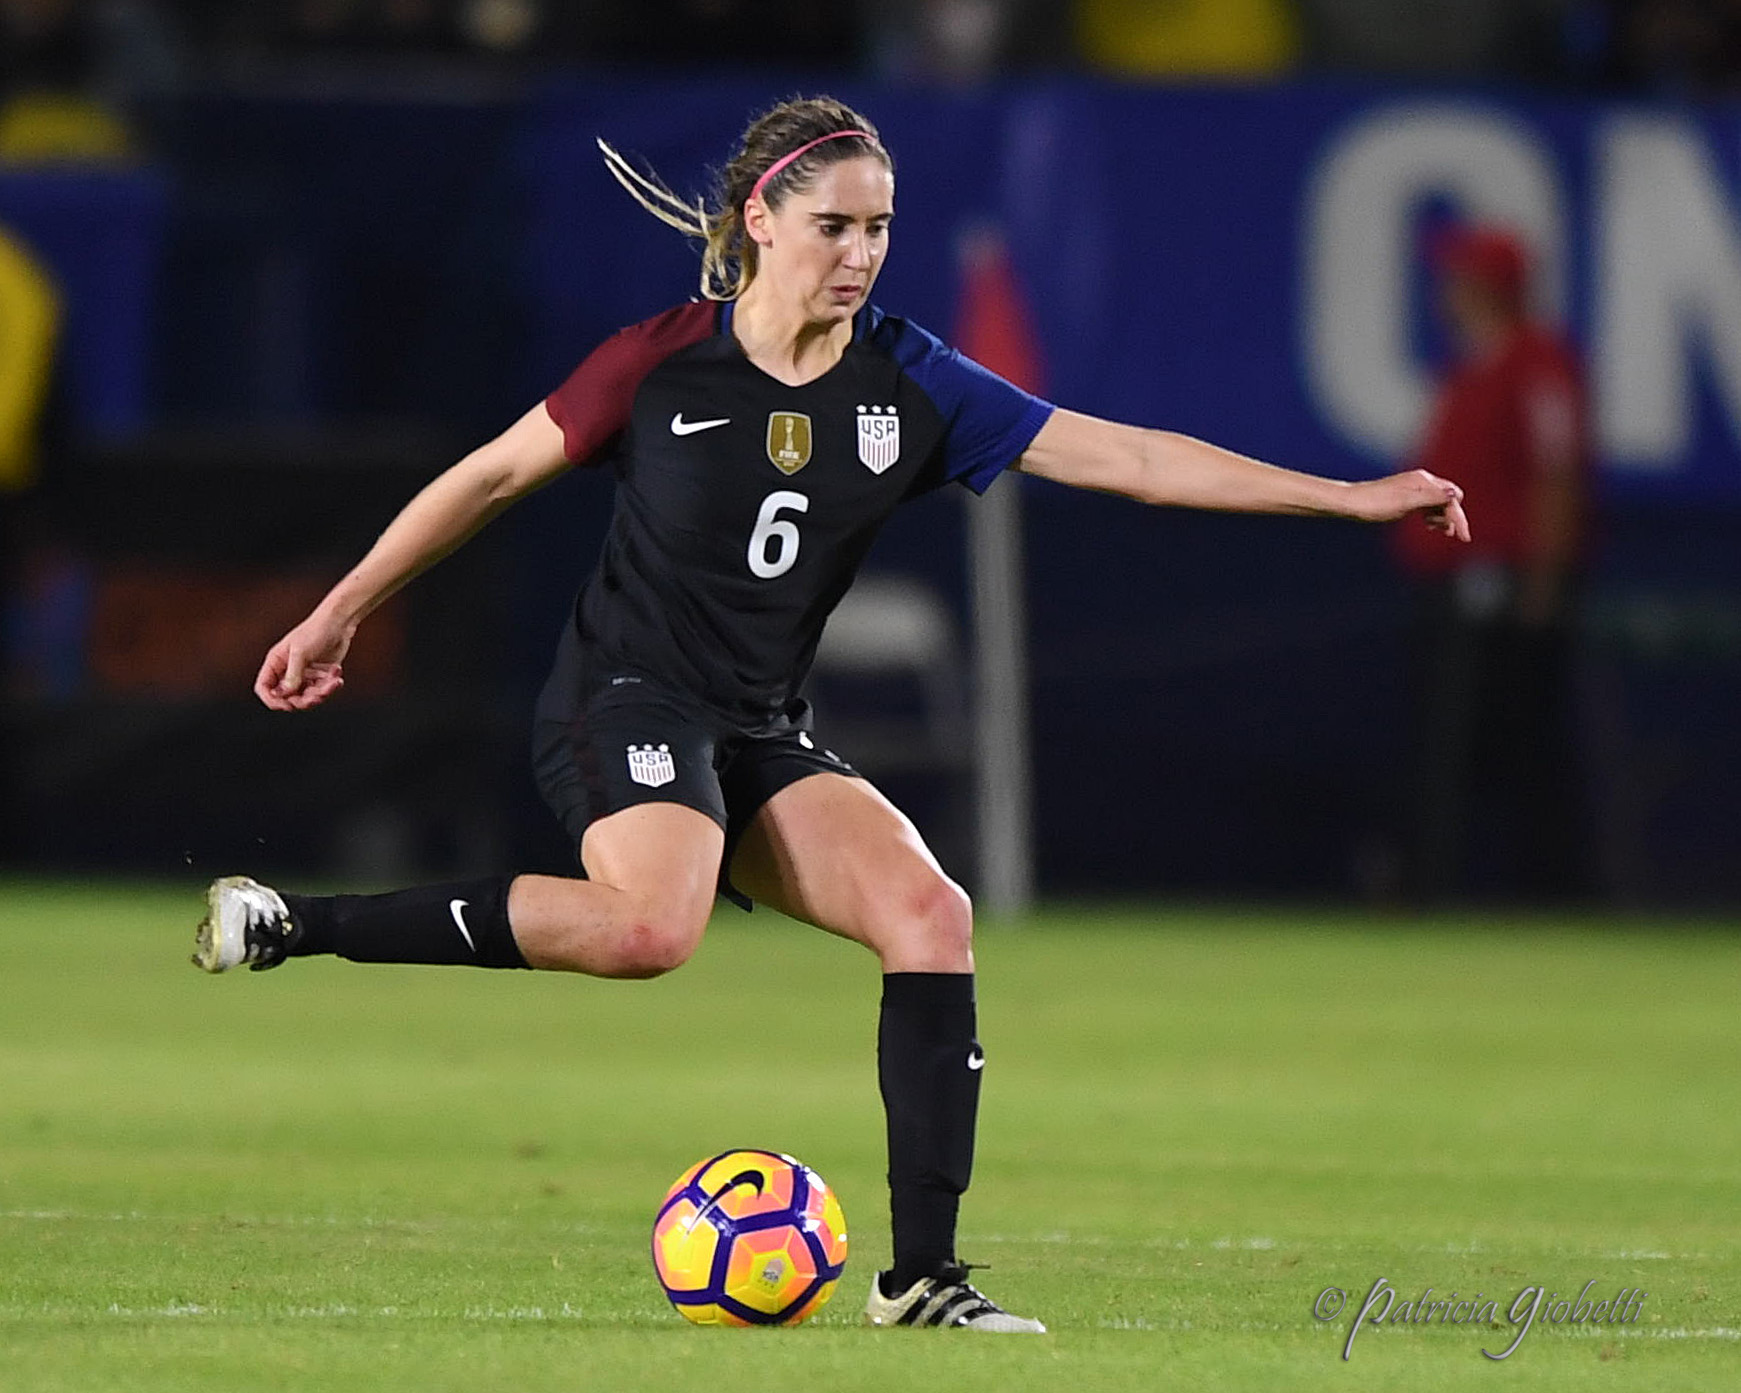 Thursday Roundup: Morgan Brian rehabbing injury with U.S. Soccer staff